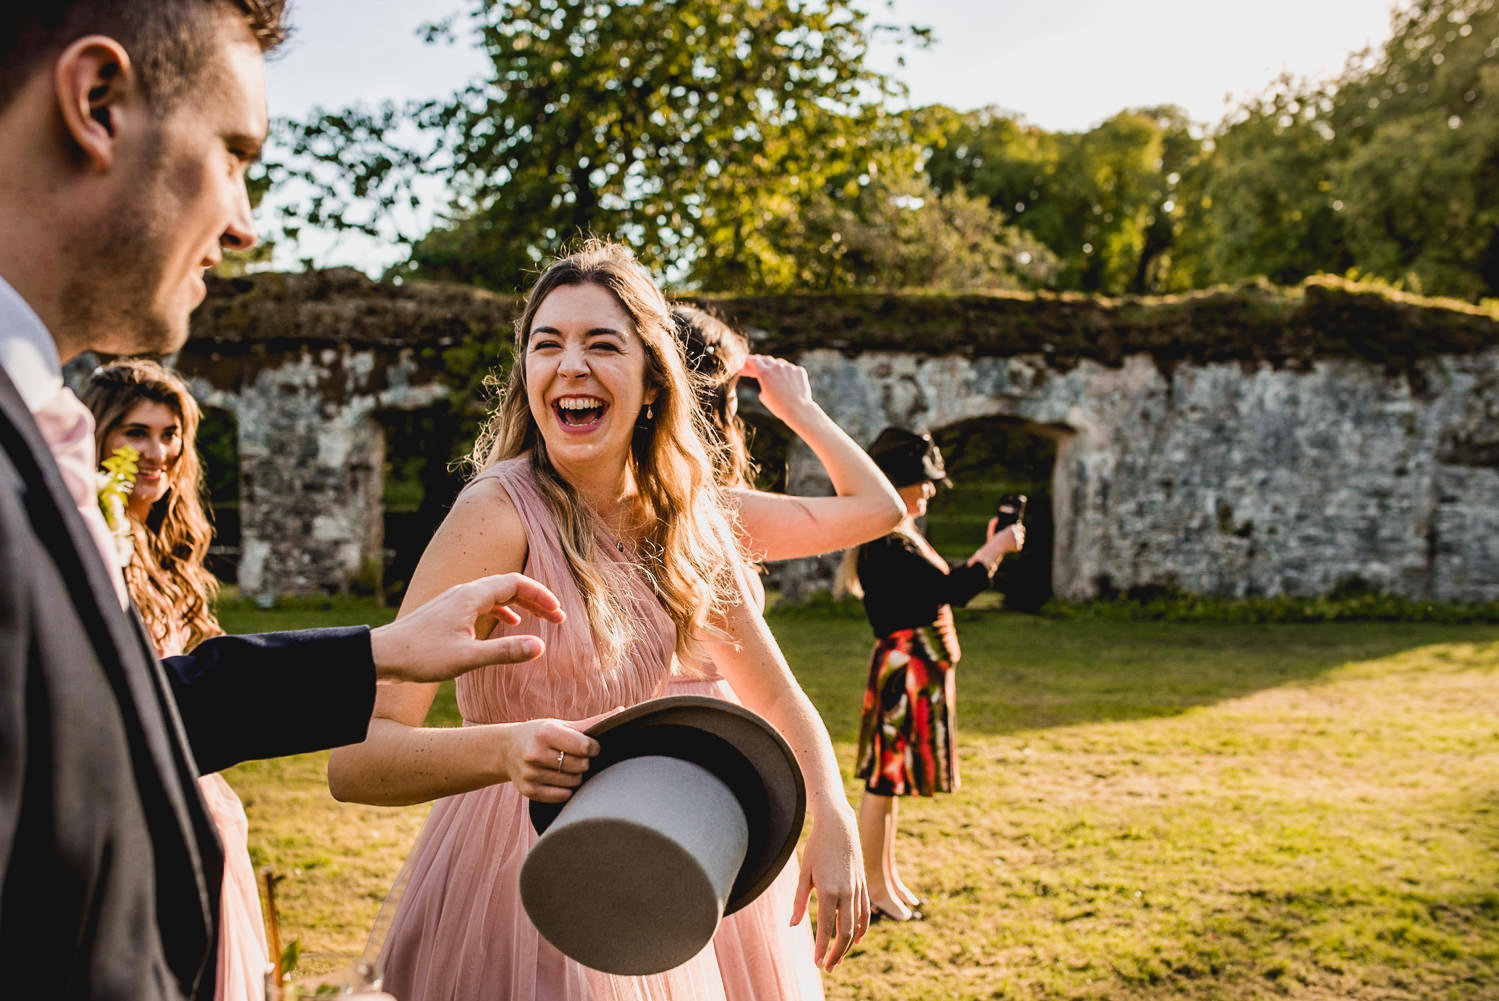 Dartington Hall Wedding Photographer laughs